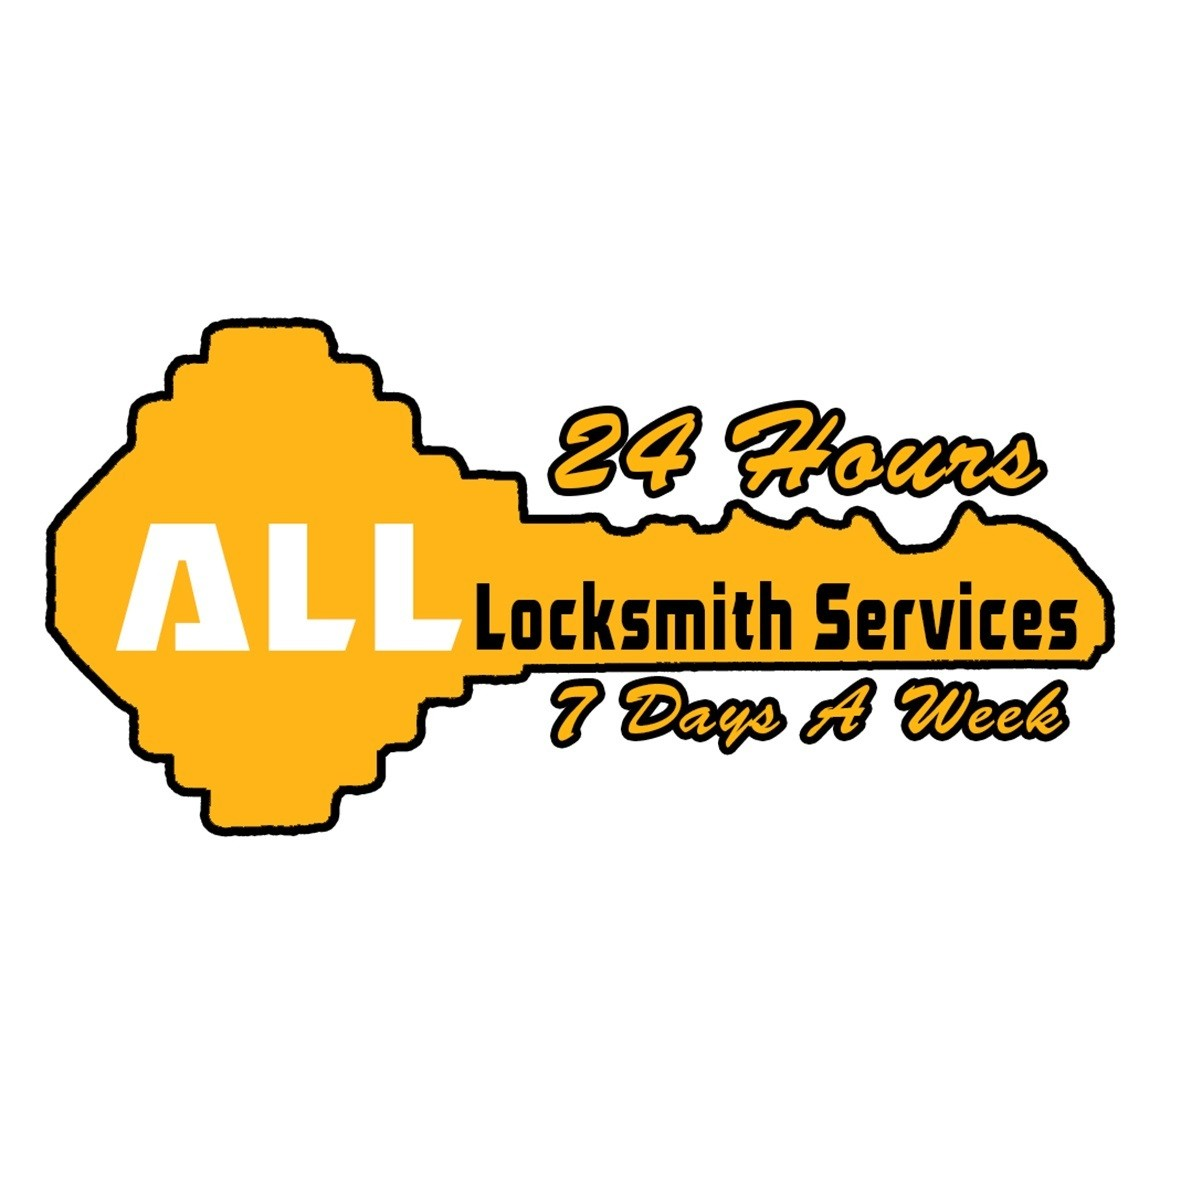 All Locksmith Services